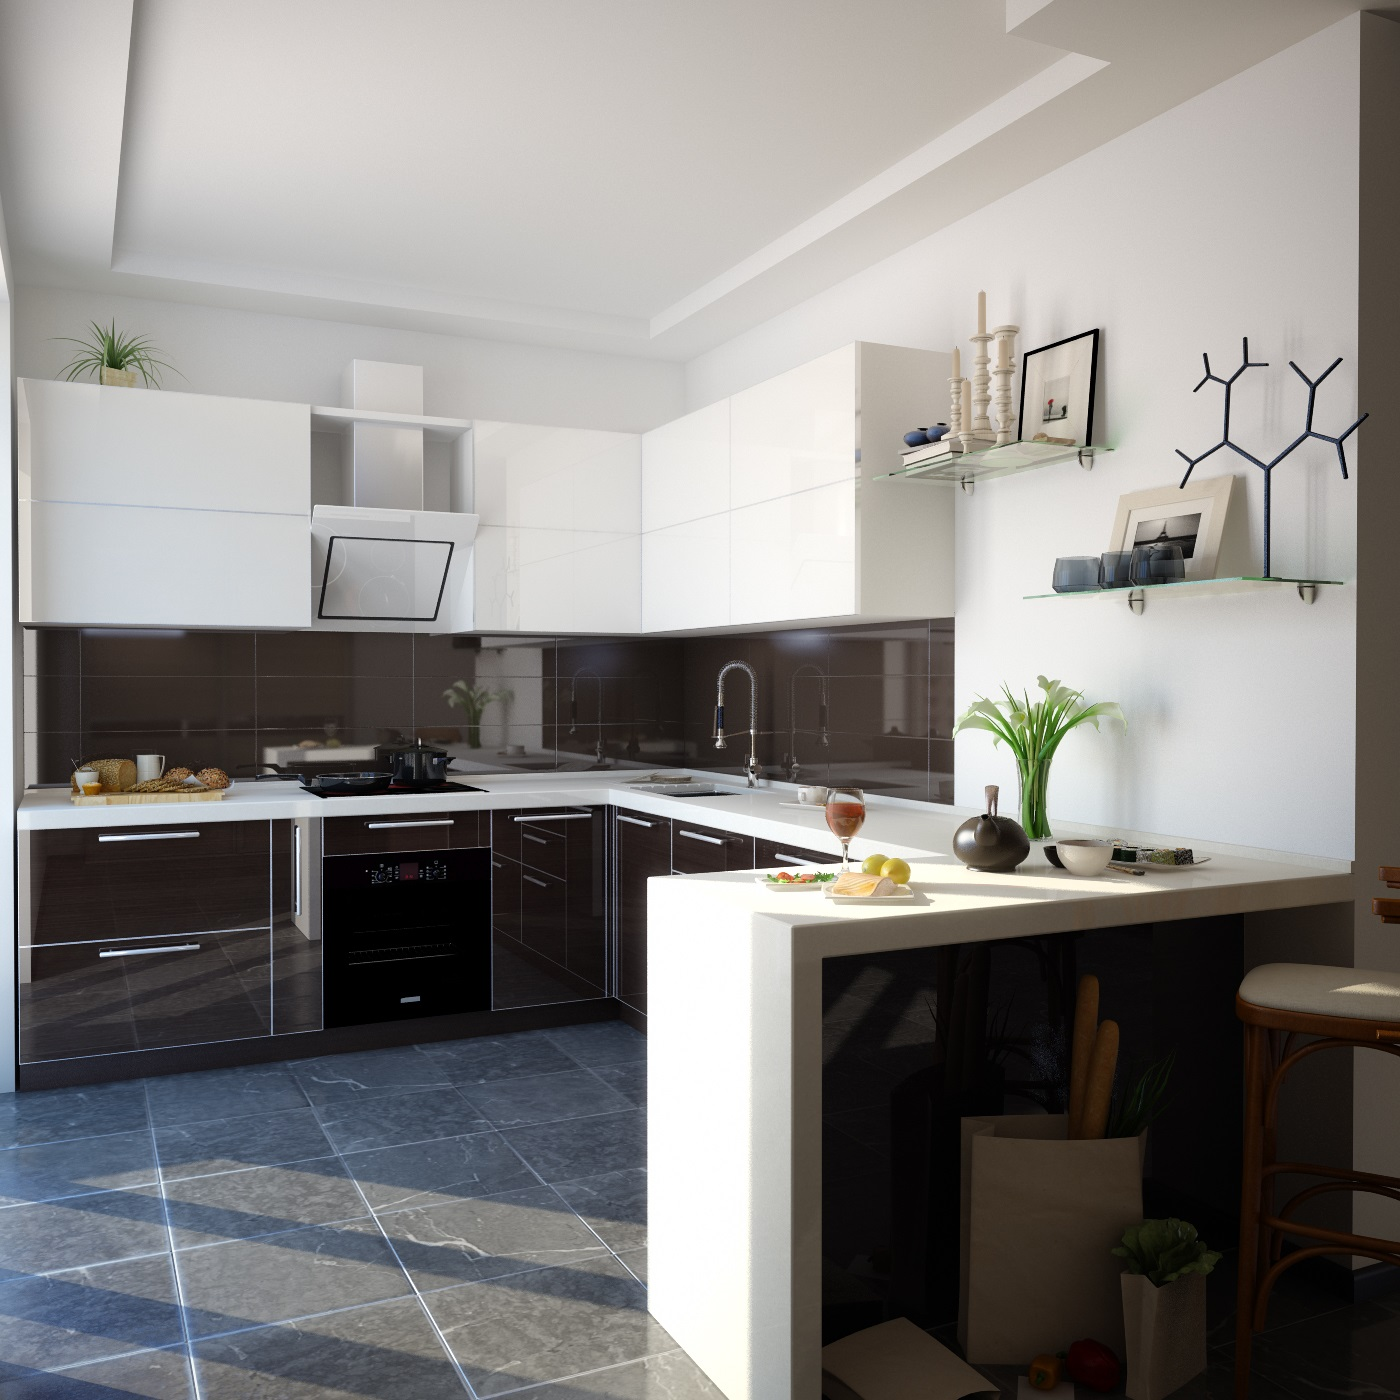 kitchen-gray-color-6